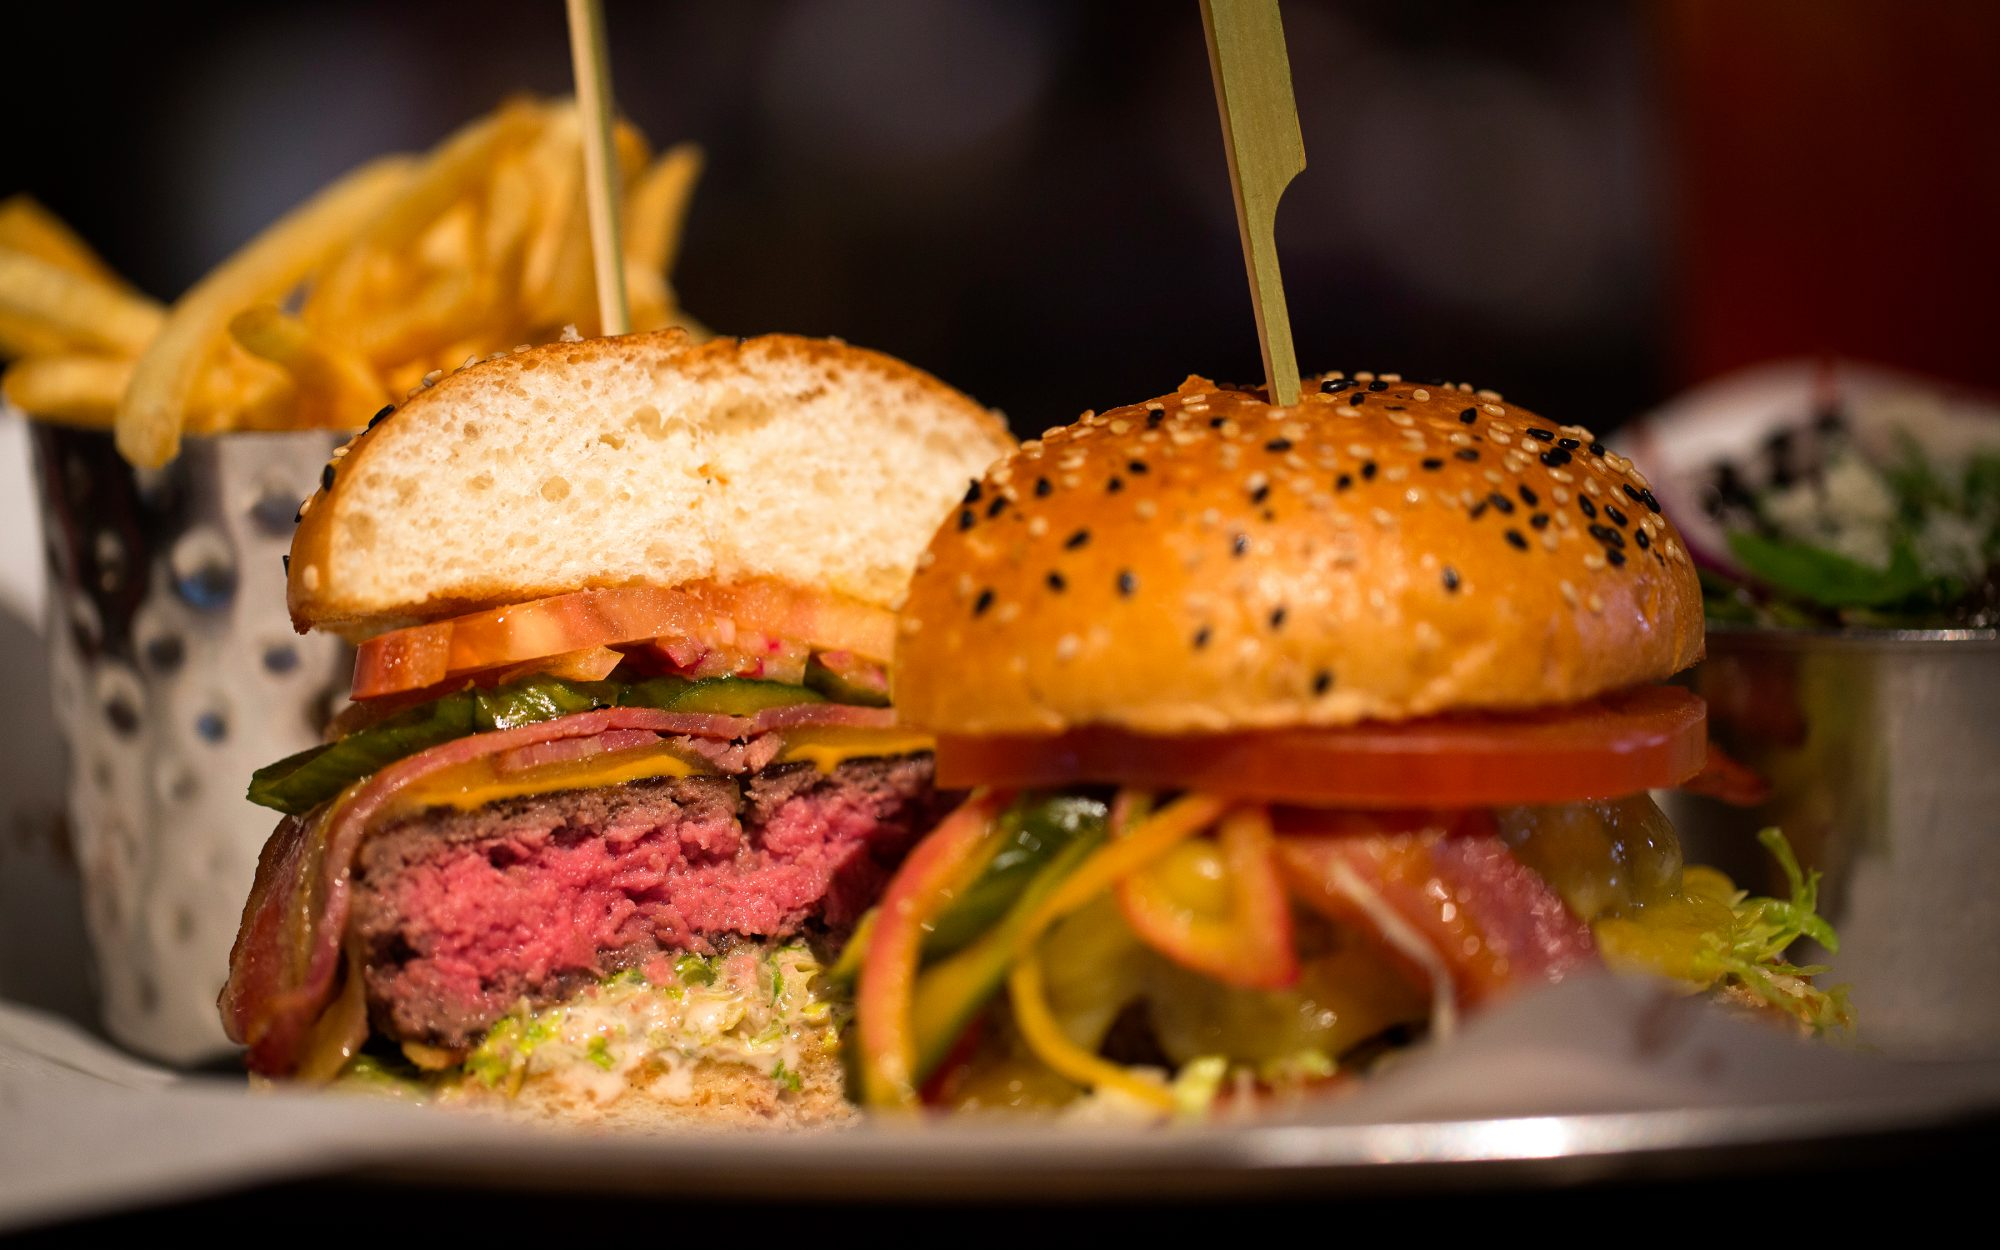 The Burger ($20) at Burger & Lobster